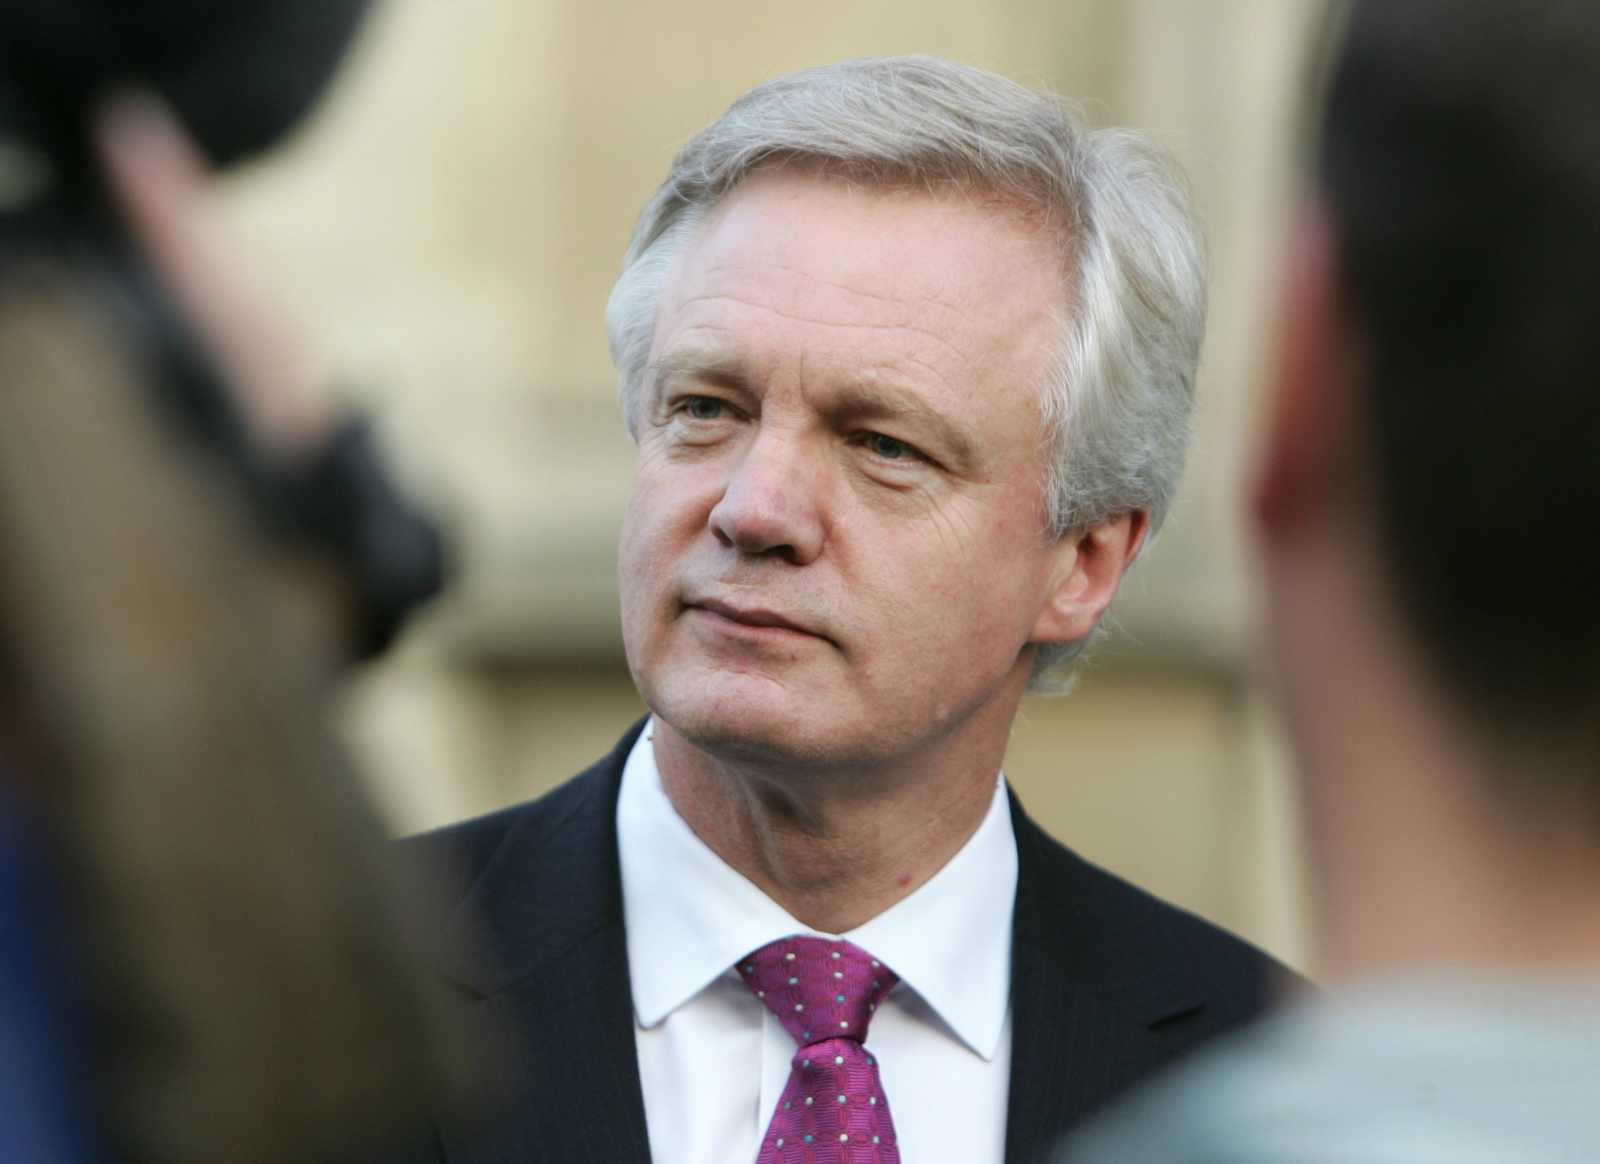 Appointment of Brexit Minister David Davis 'welcomed in assuring transition for British farming outside EU'